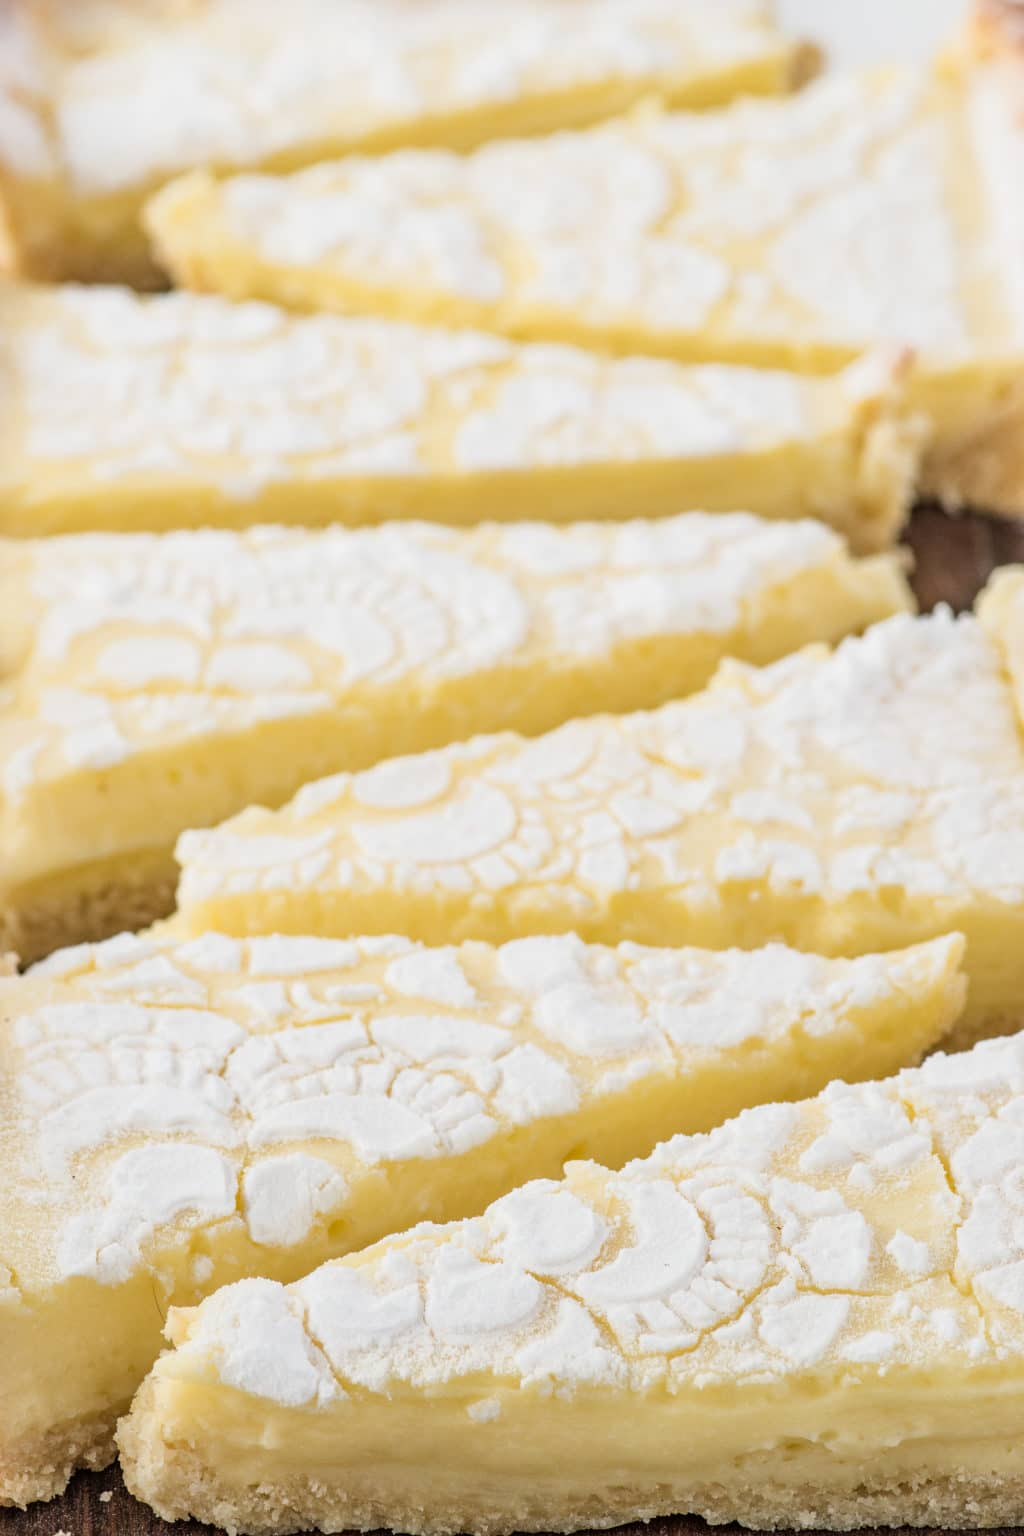 Triangular slices of bright yellow lemon tart